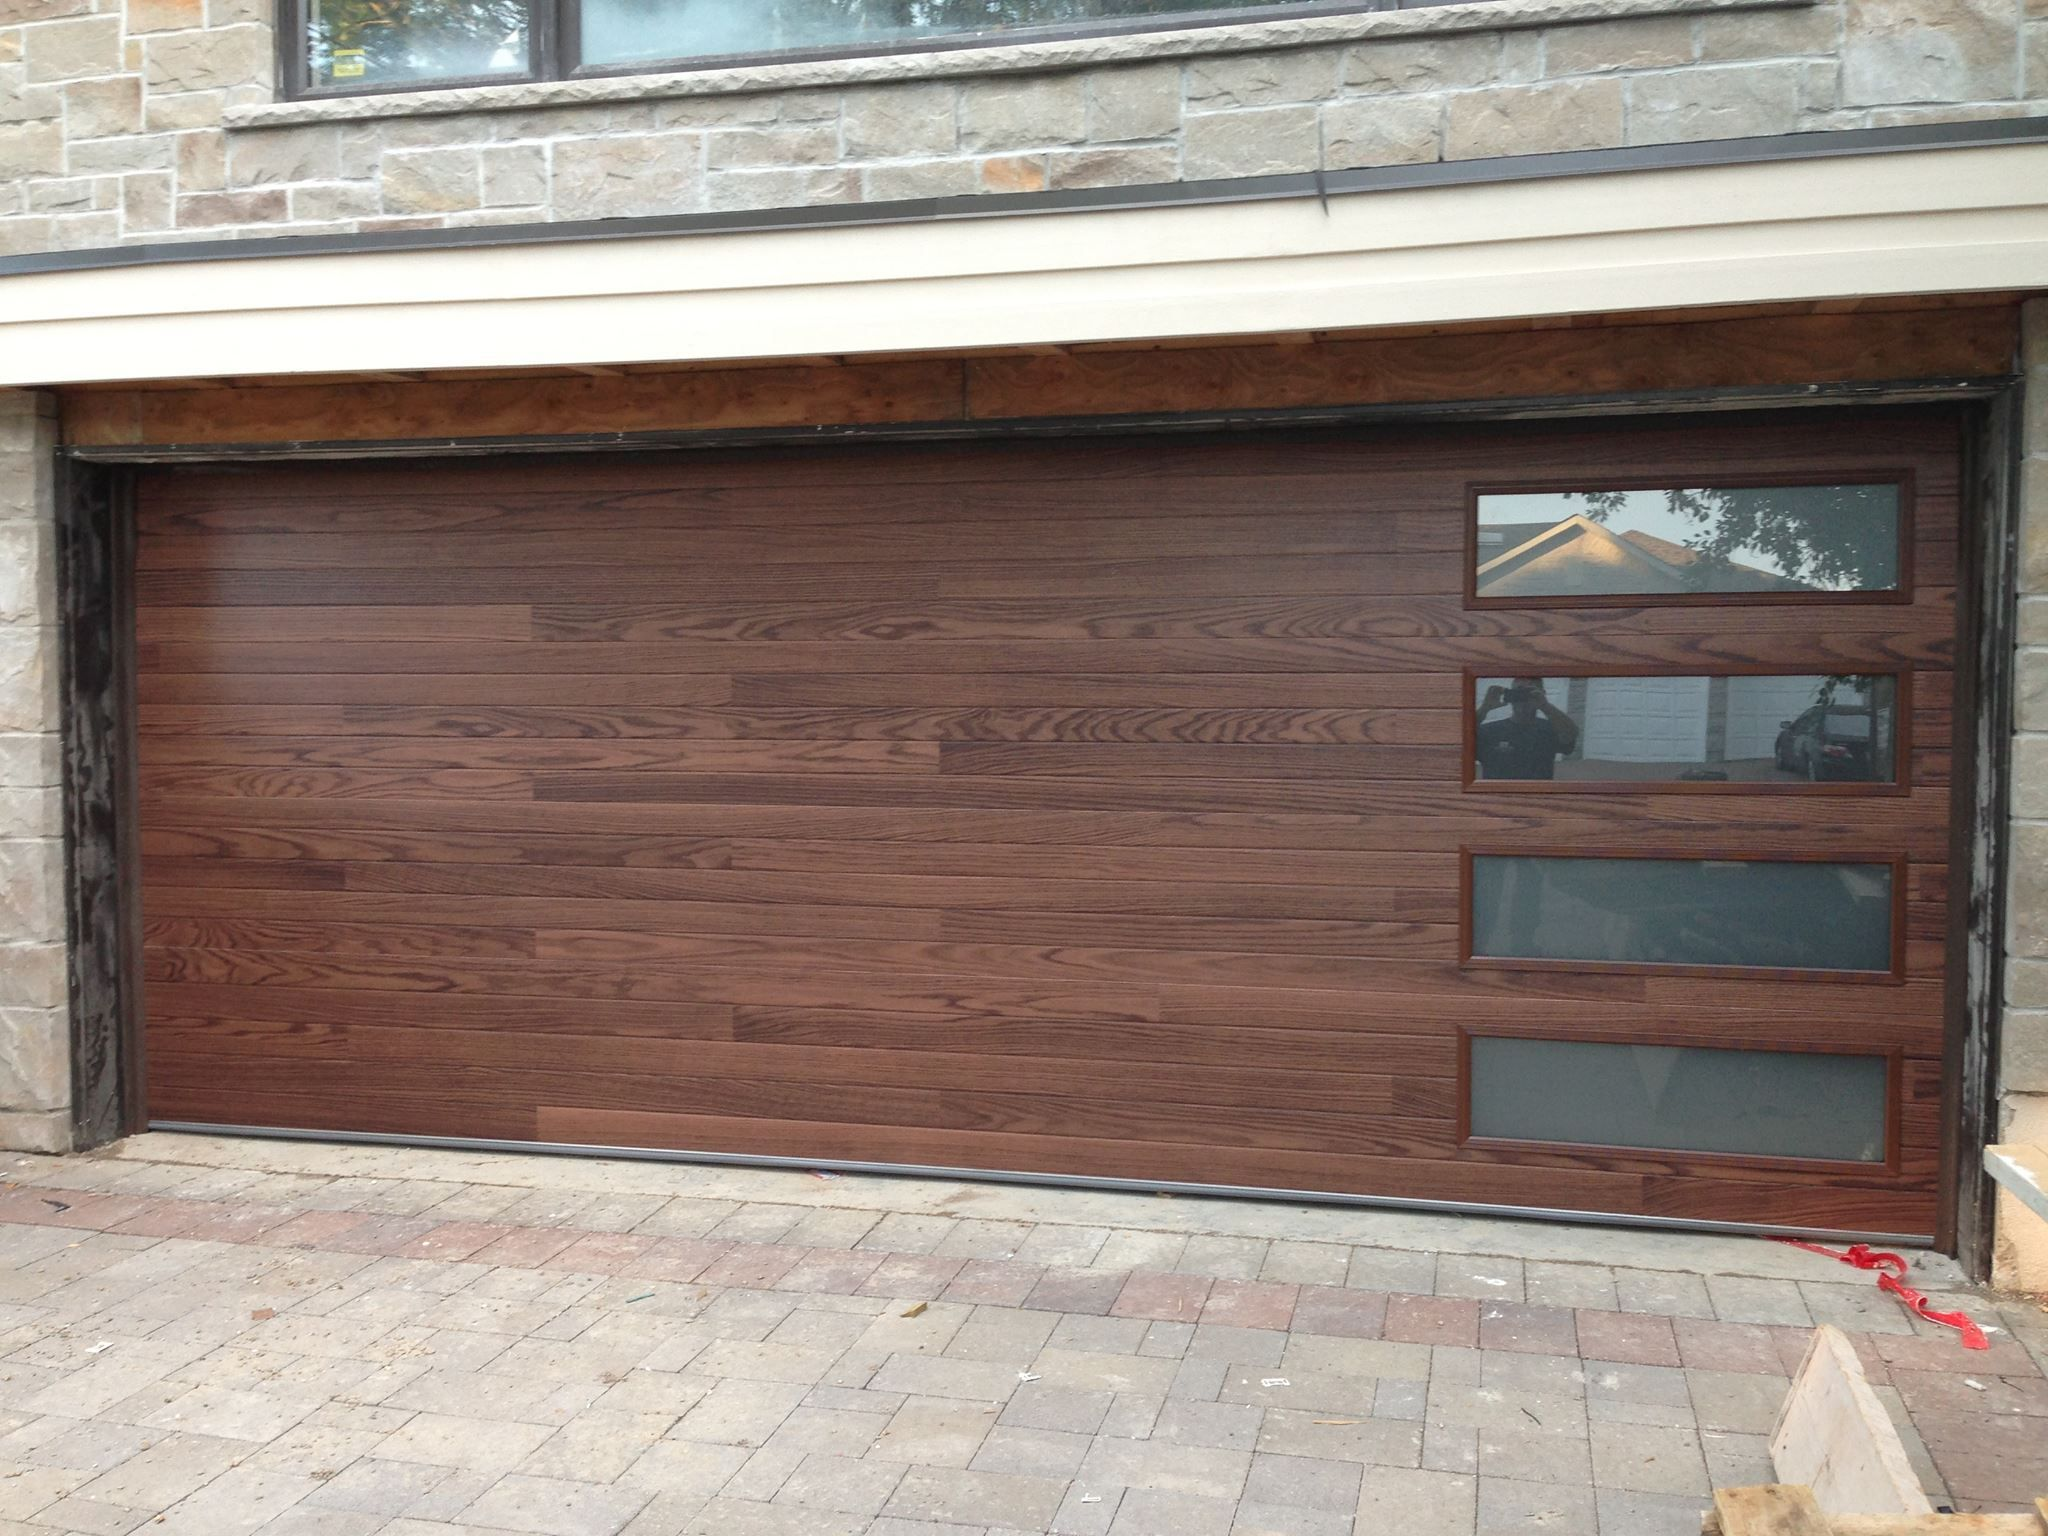 Transform Your Home Or Business With The Warmth And Appeal Of An Accents Planks Garage Door 34 Bes Garage Door Design Garage Door Styles Garage Door Makeover